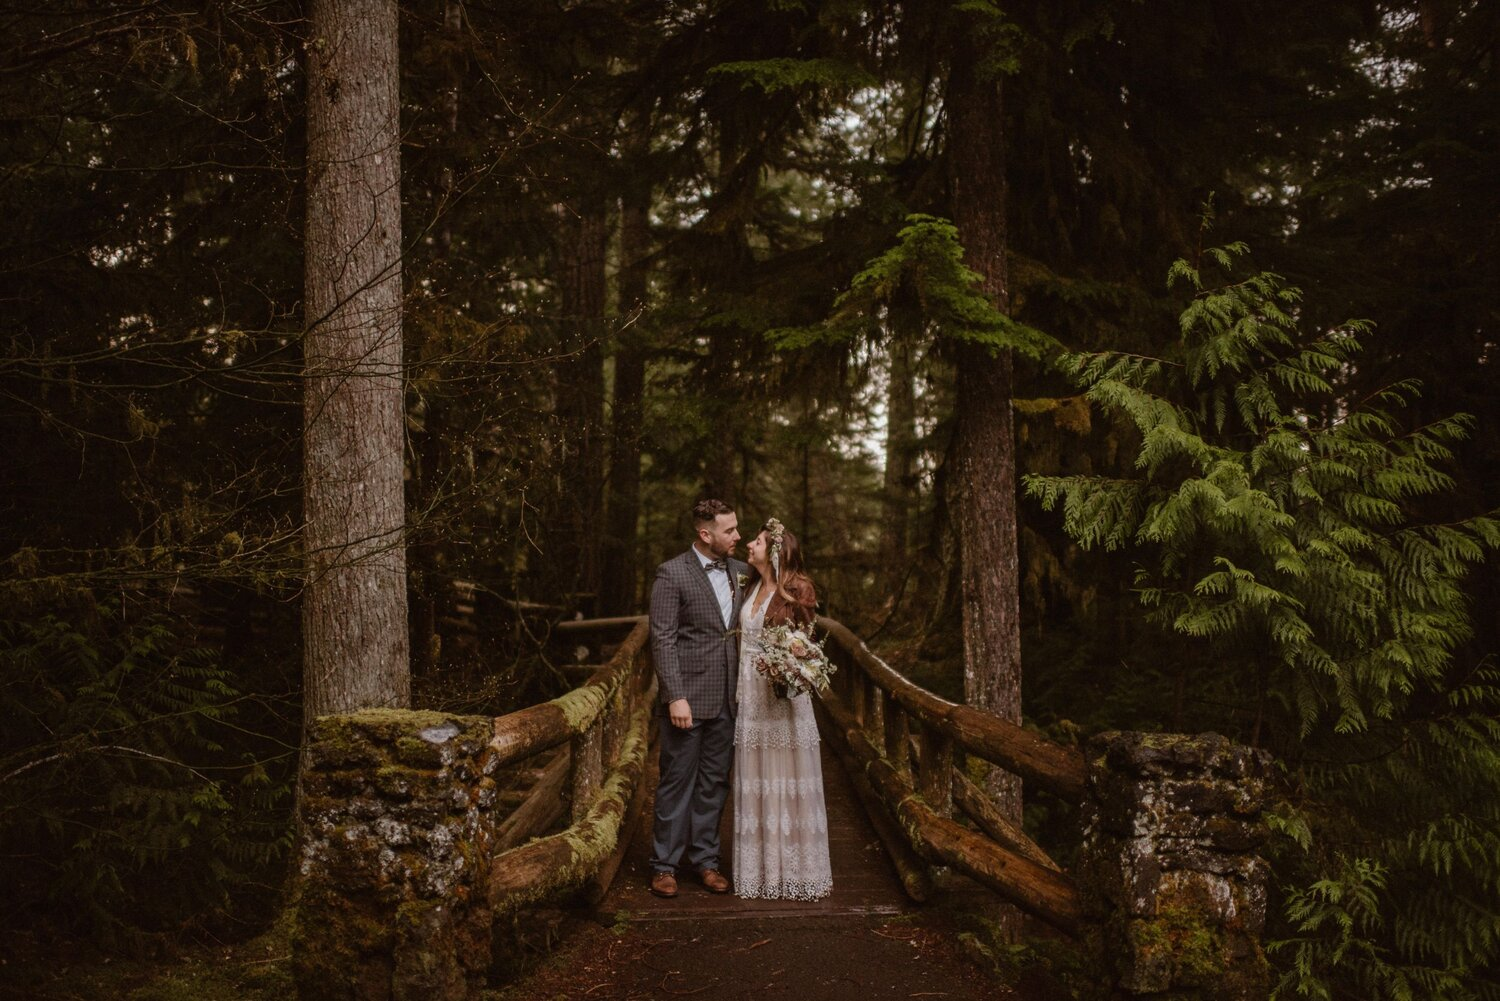 A bride and groom look at each other while standing on a bridge in the forest.